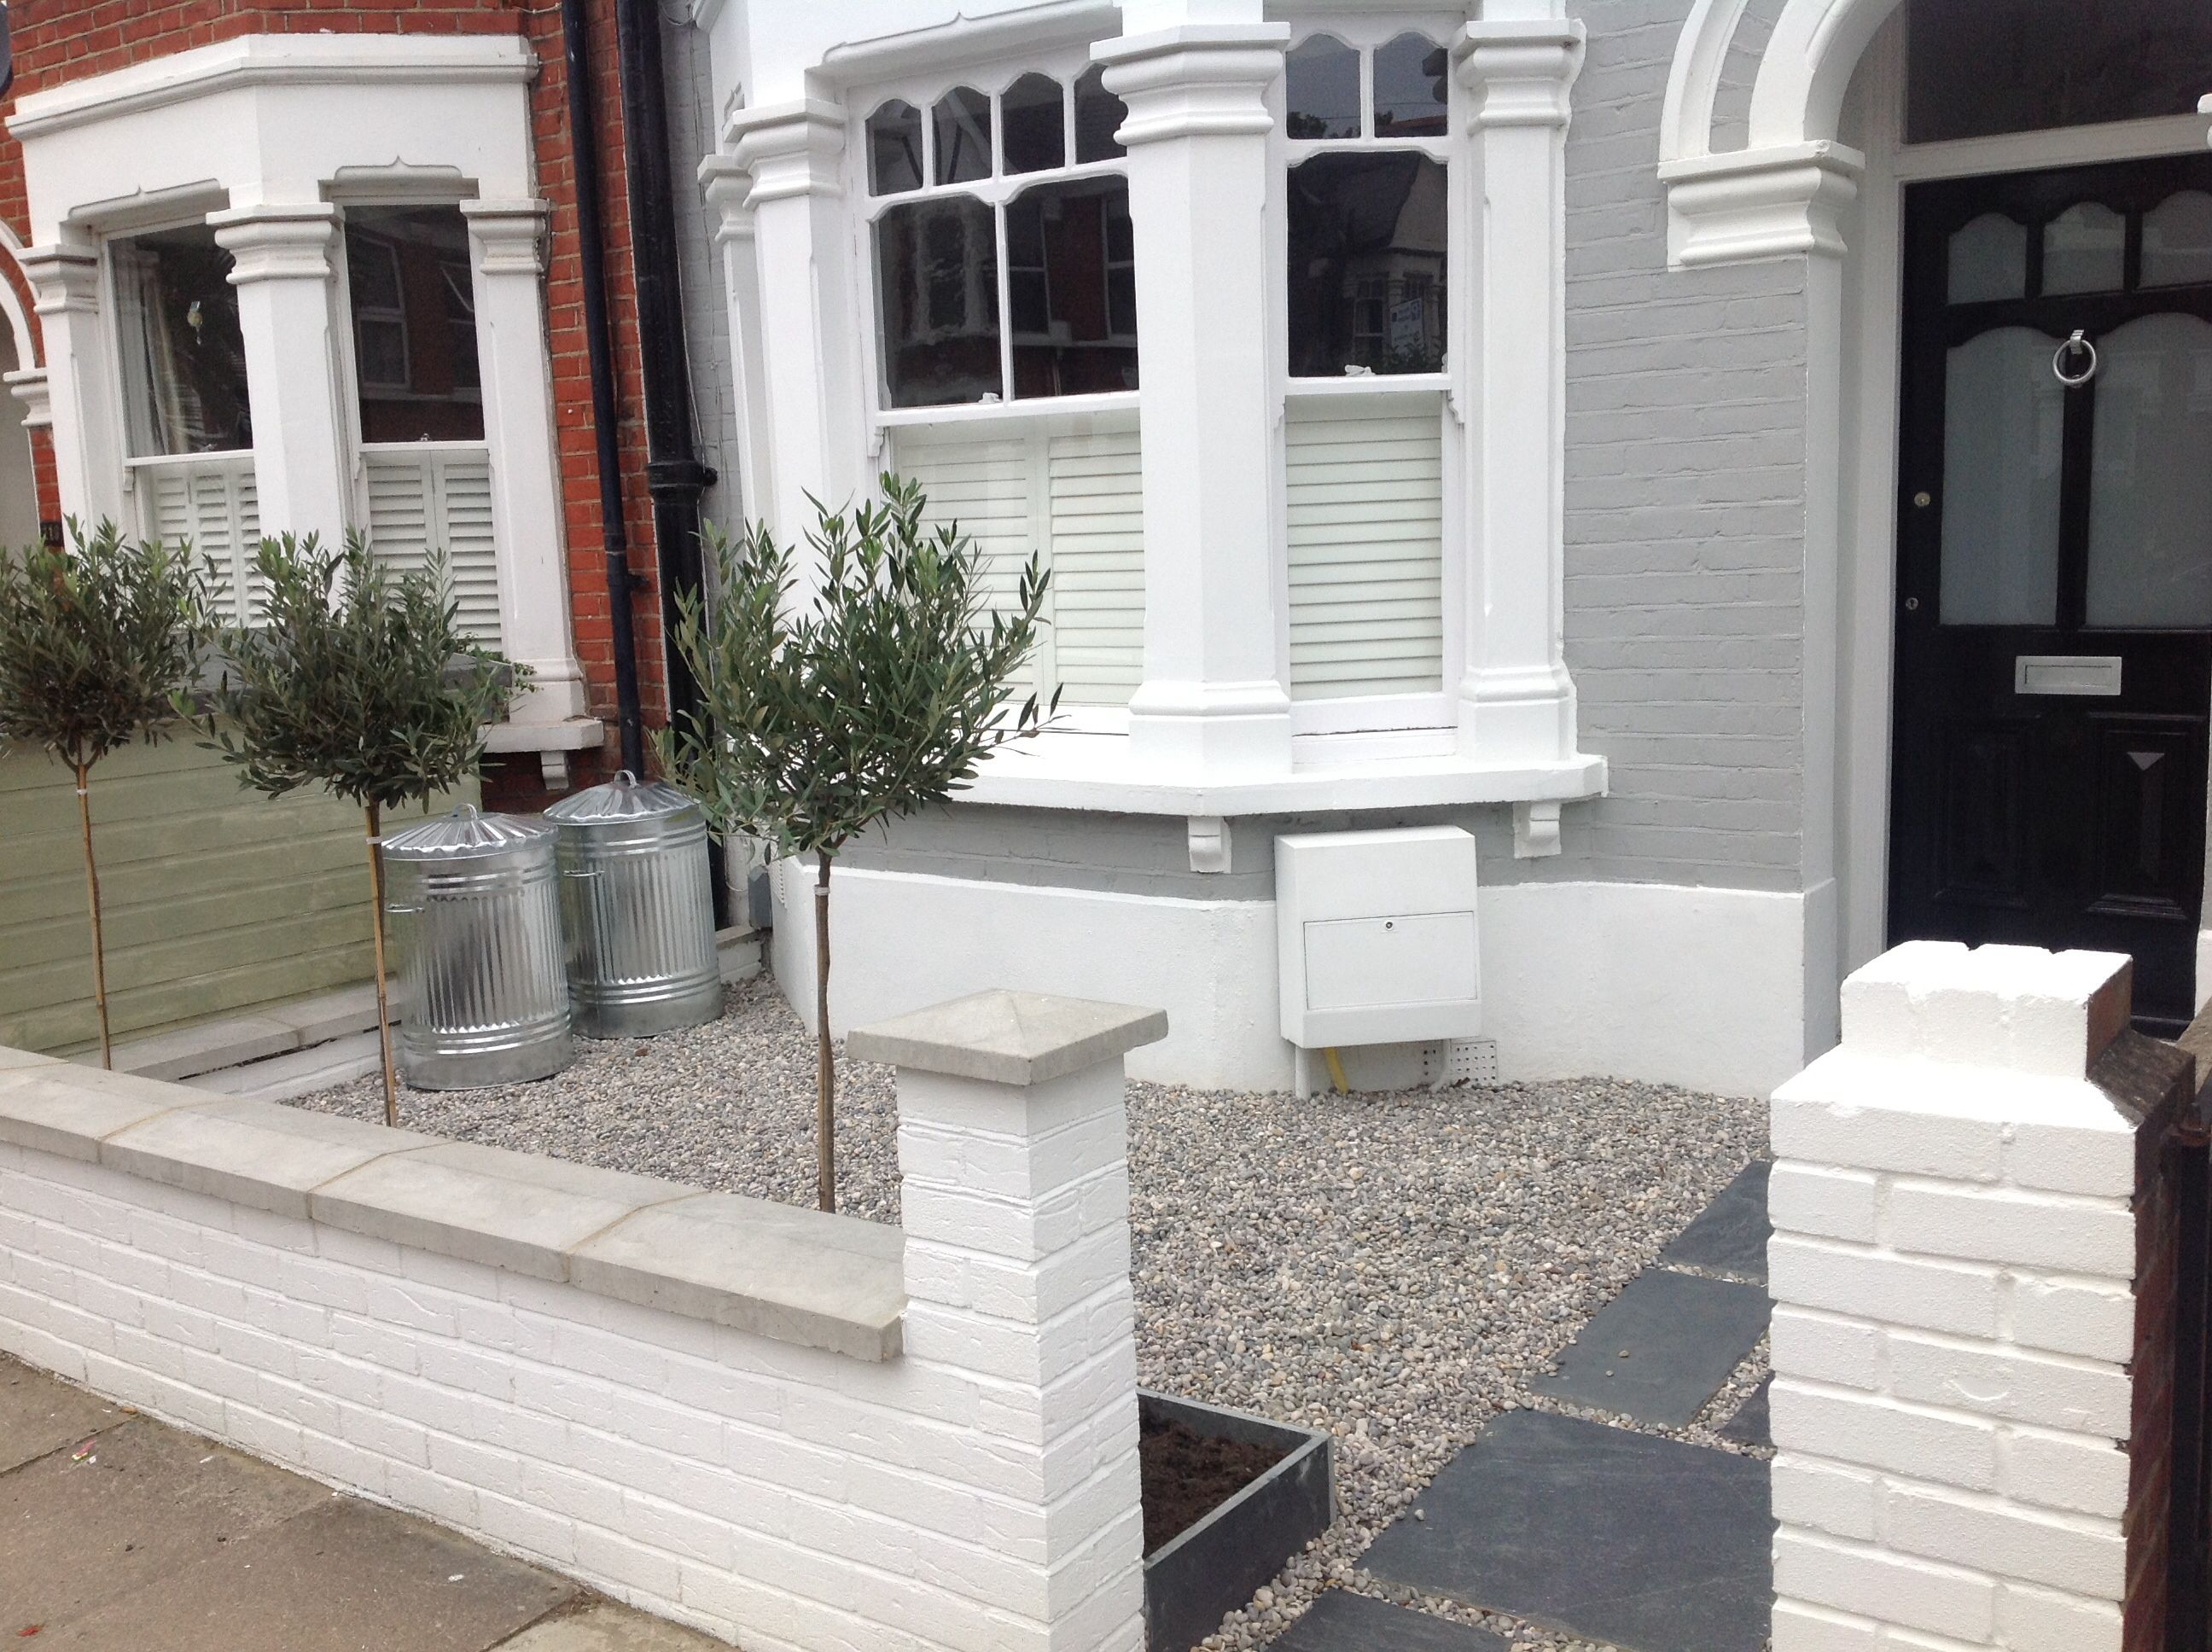 front garden paving and gravel theme love the white paint on the front walls - Front Garden Ideas Terraced House